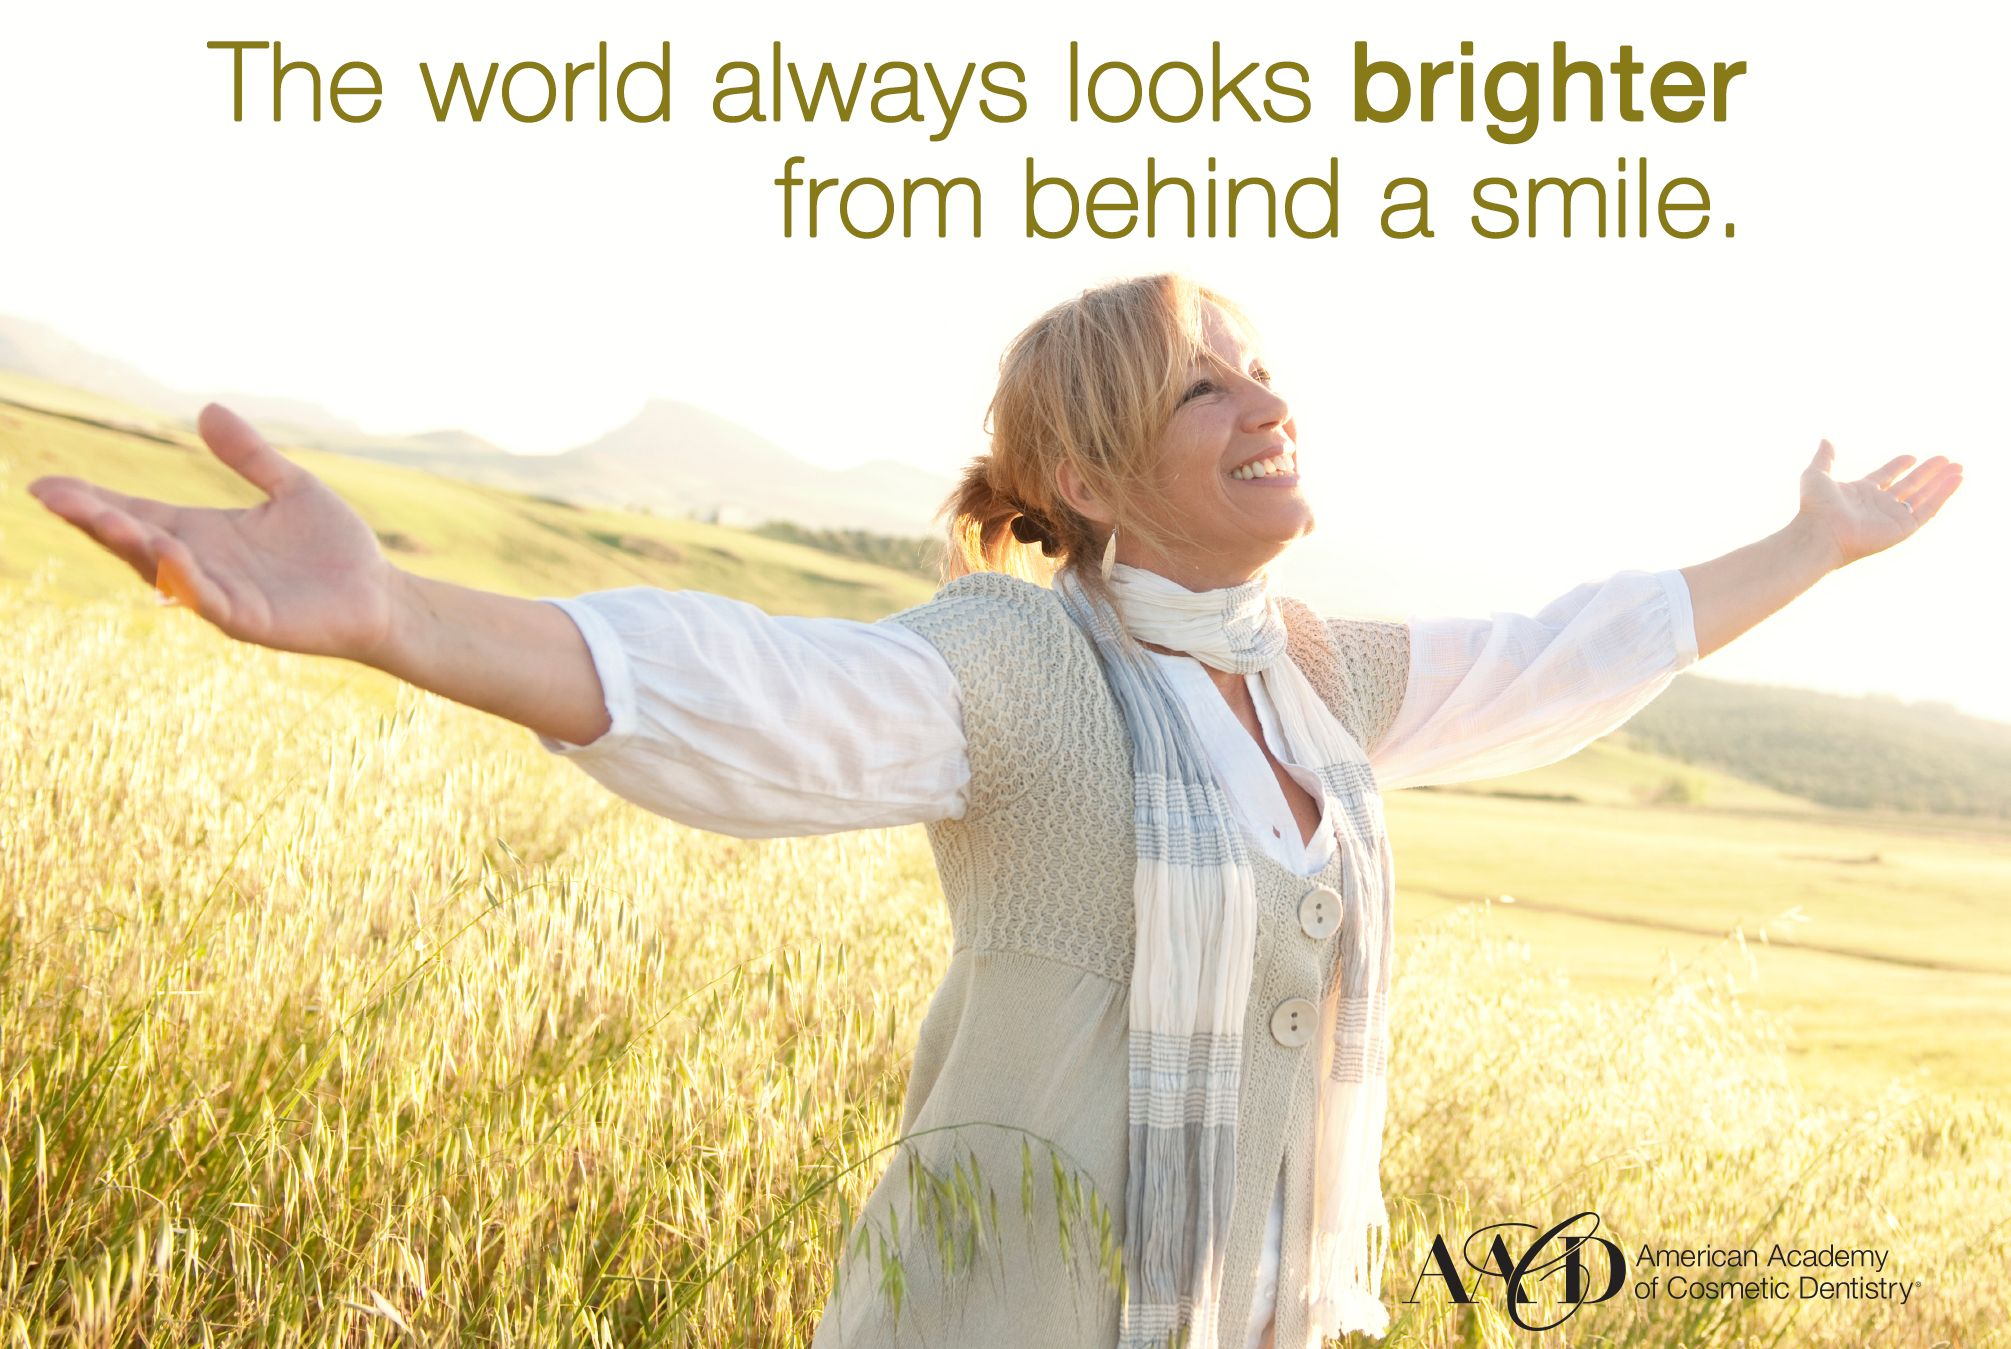 The world always looks brighter from behind a smile. (With